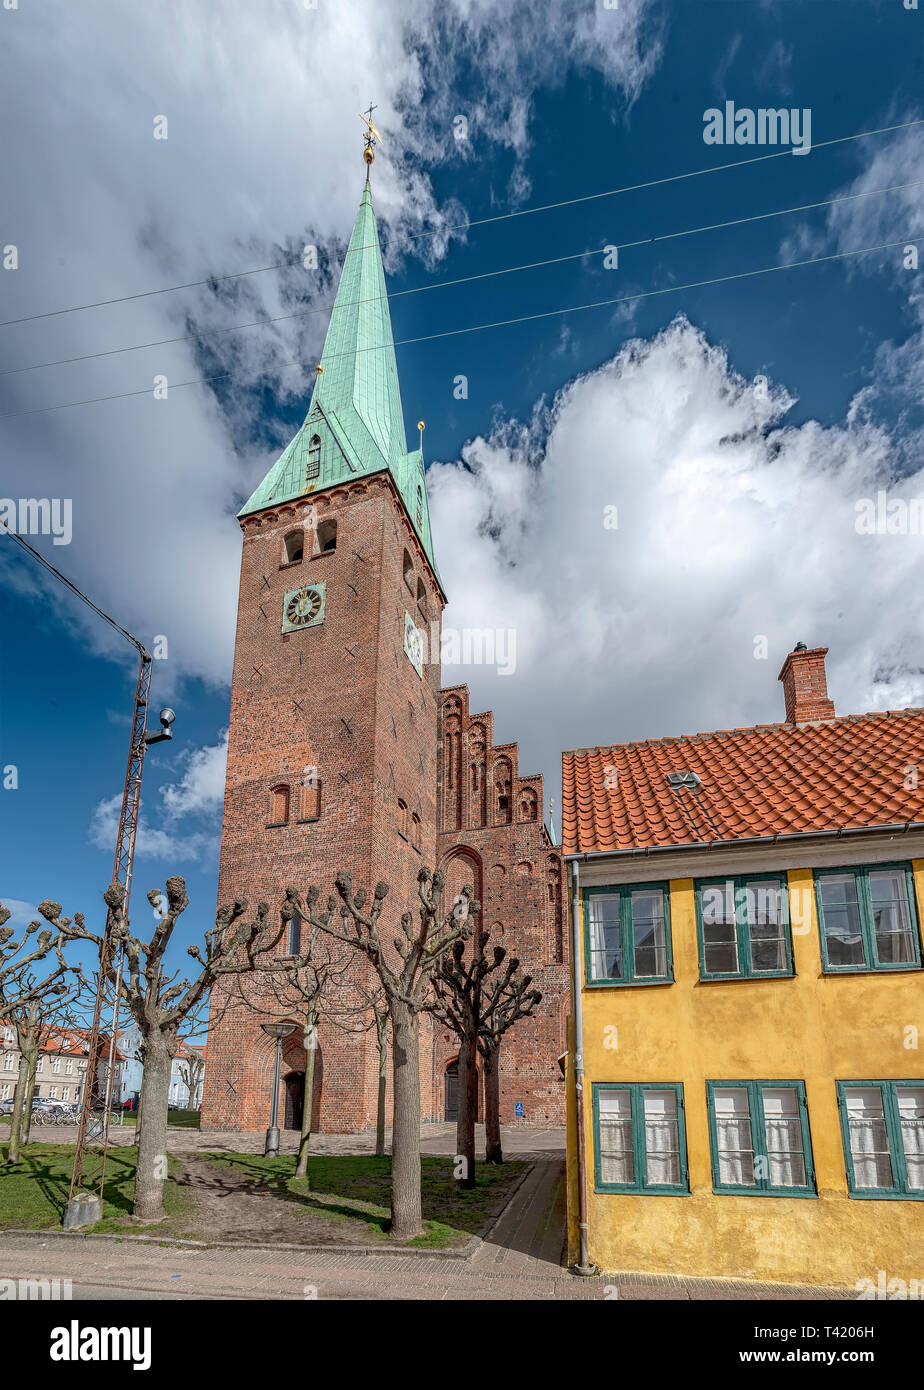 The church of Saint Olaf in the old town of Helsingor in Denmark. Stock Photo